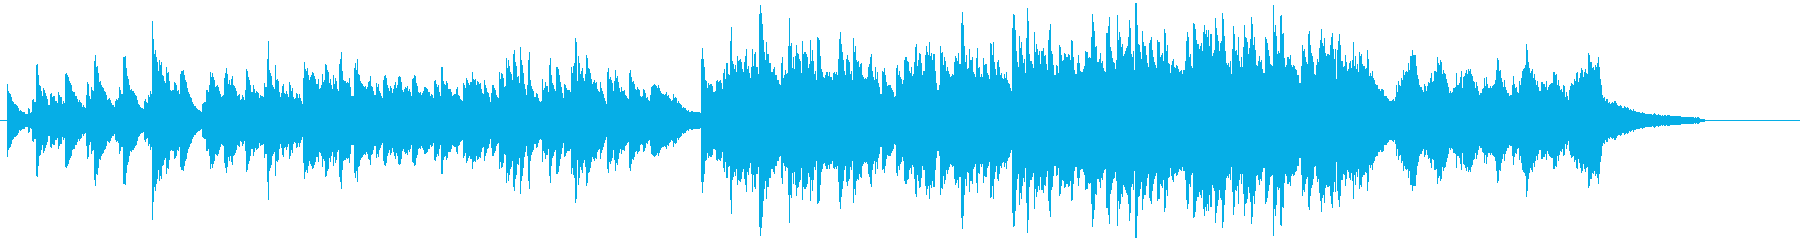 A song with the image of a soft road's reproduced waveform